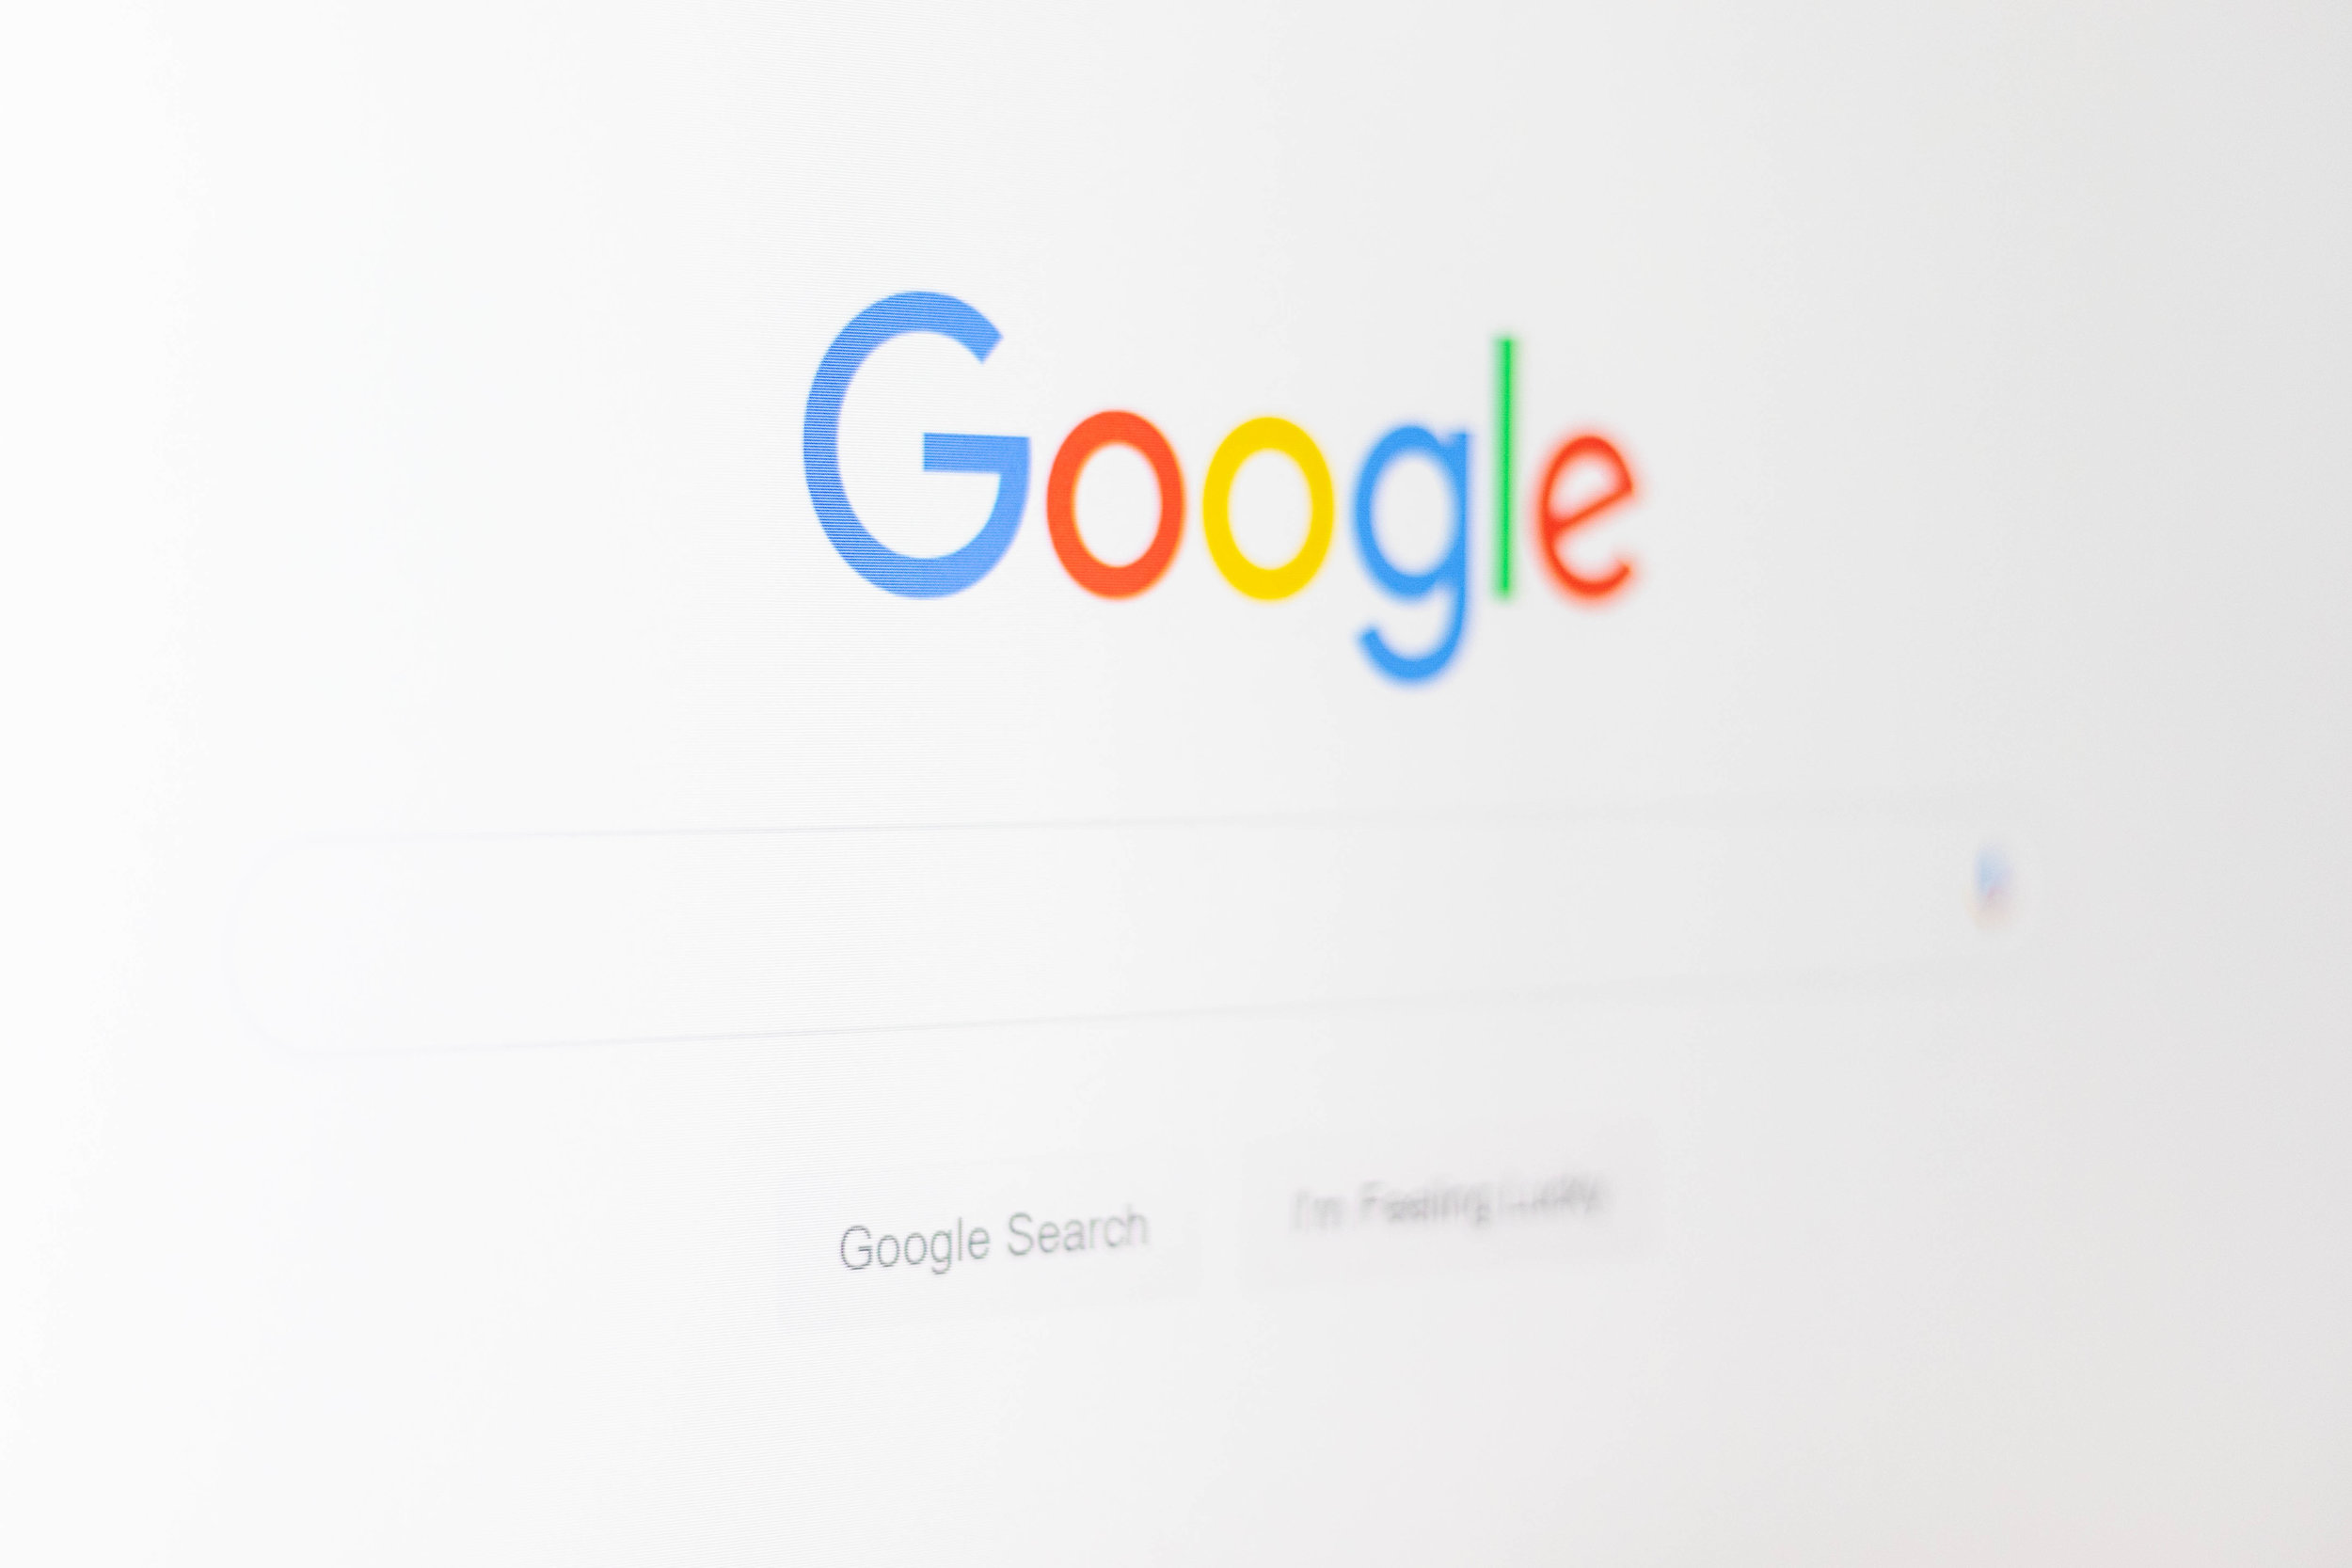 Google Ads - Accelerate your business growth by connecting with people that are searching for what your business has to offer. We create and manage Google ad campaigns that generate tangible results for our clients.